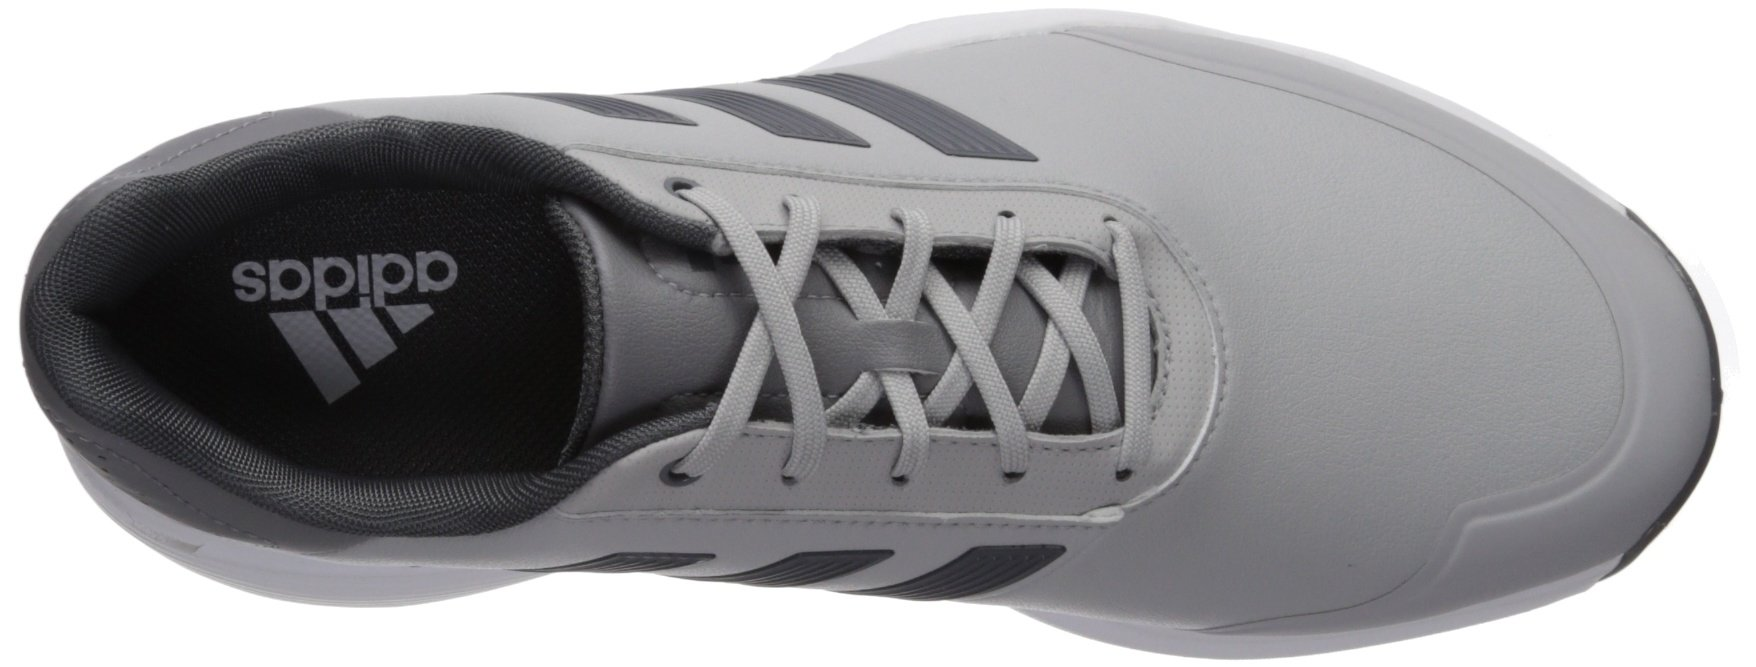 adidas Men's Adipower Bounce WD Golf Shoe, Two Five Grey Three Fabric, 12 Wide US